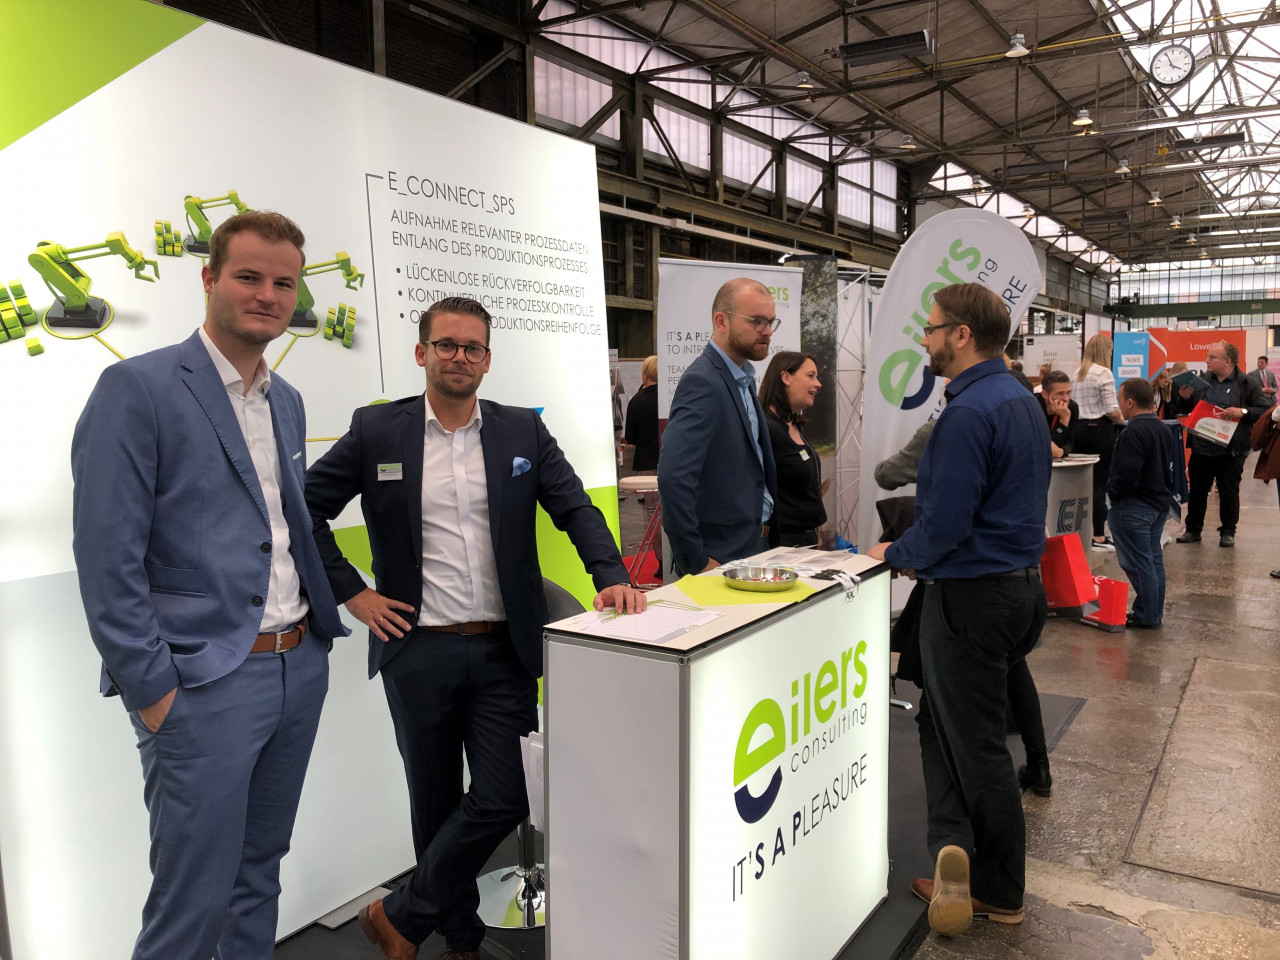 Karrieretag 2019 in Düsseldorf